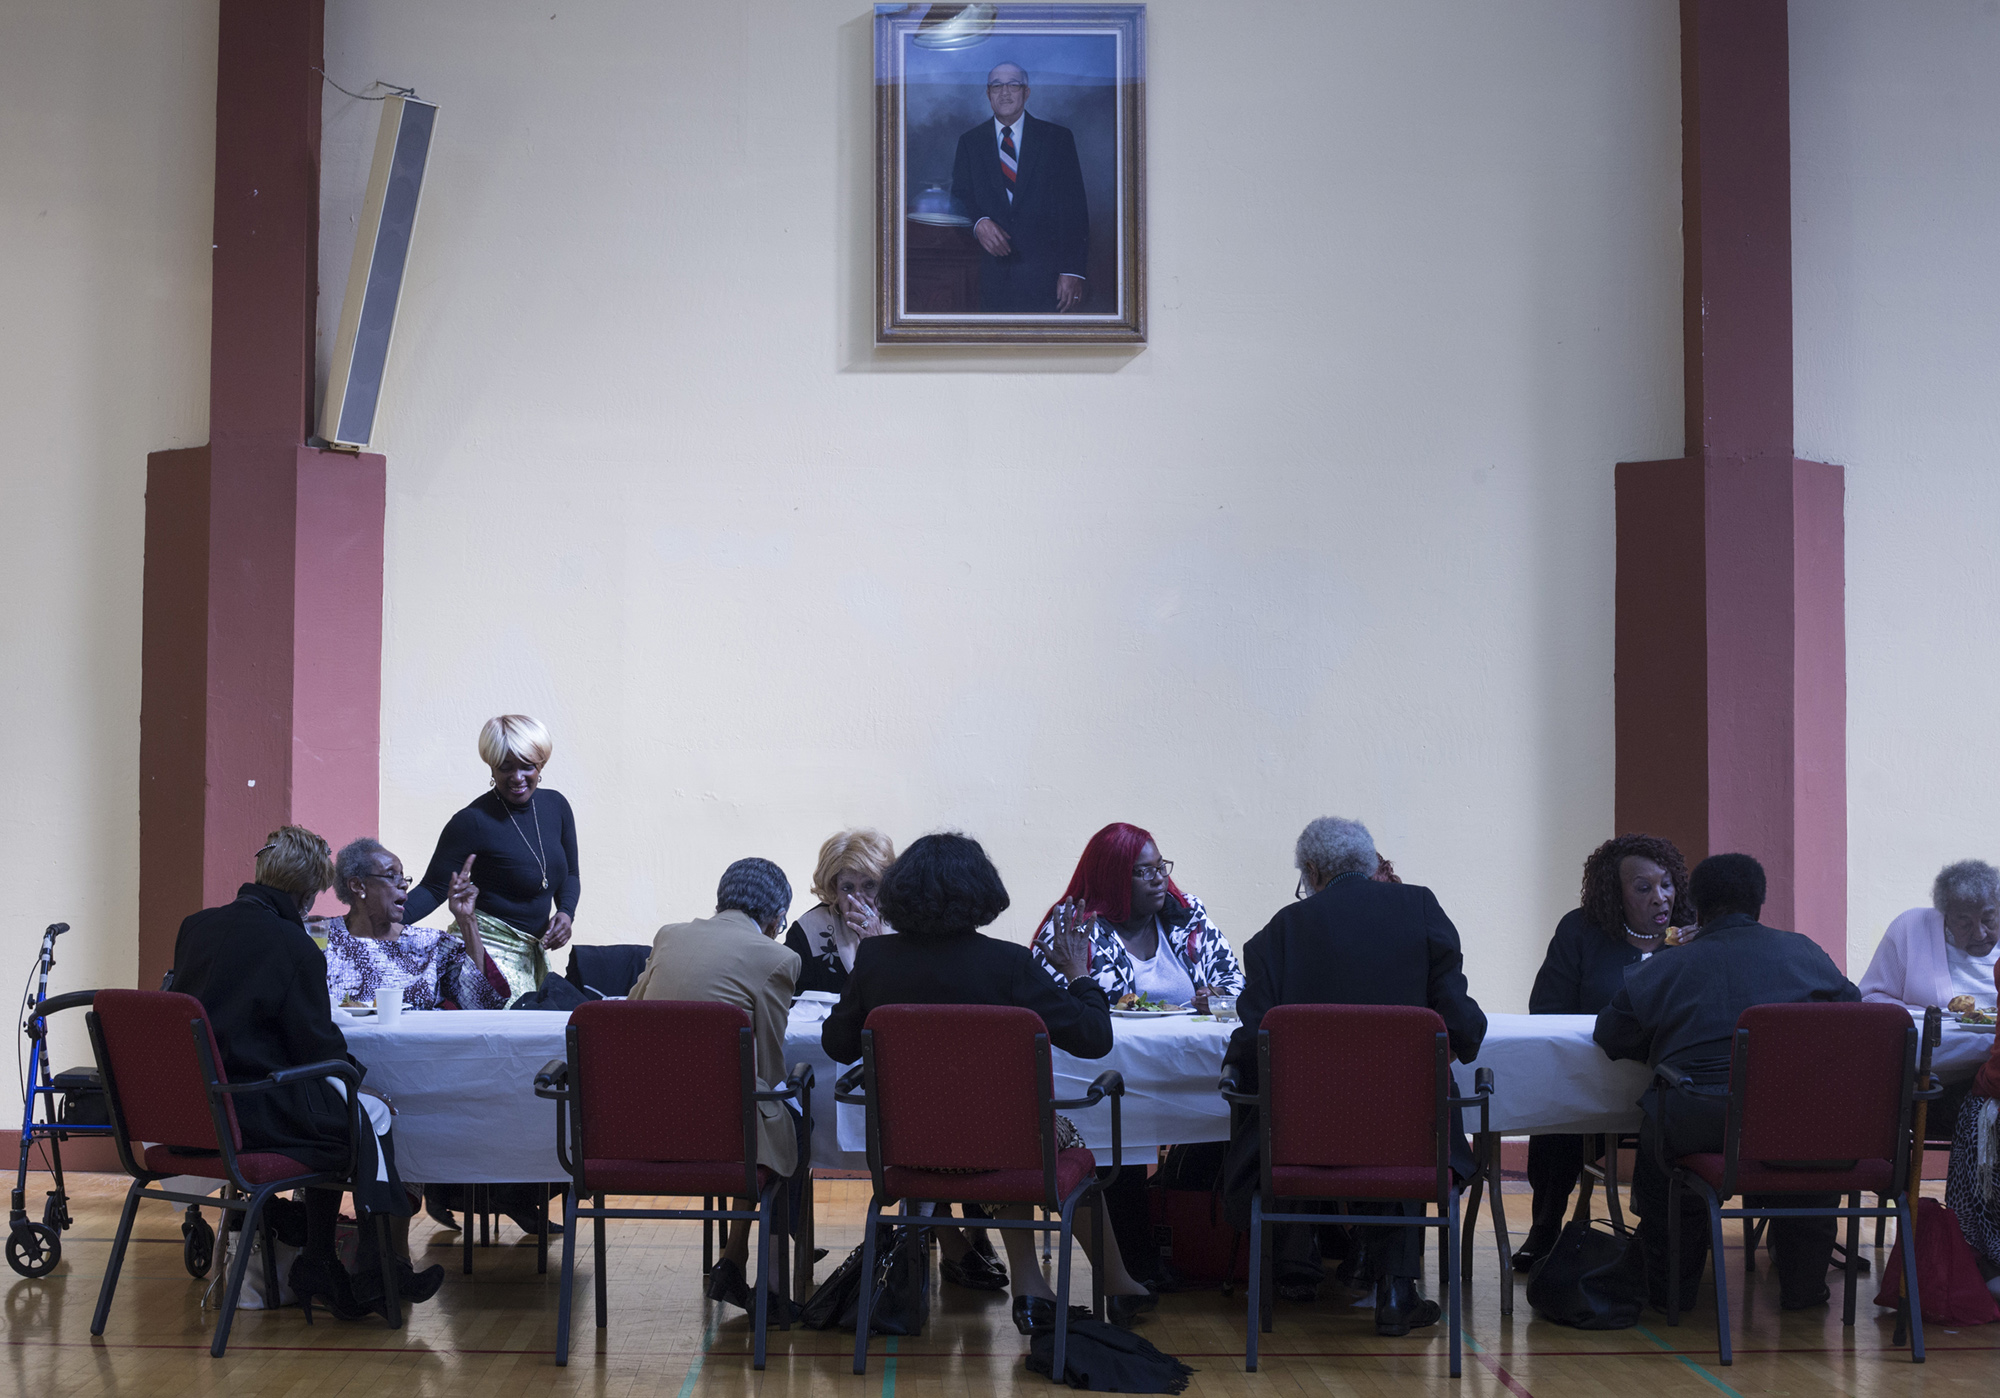 Members of the congregation sit for a luncheon following the service at the Third Baptist Church in the Fillmore district of San Francisco, Calif., on Sunday, November 5, 2017. (Brittany Greeson/GroundTruth)